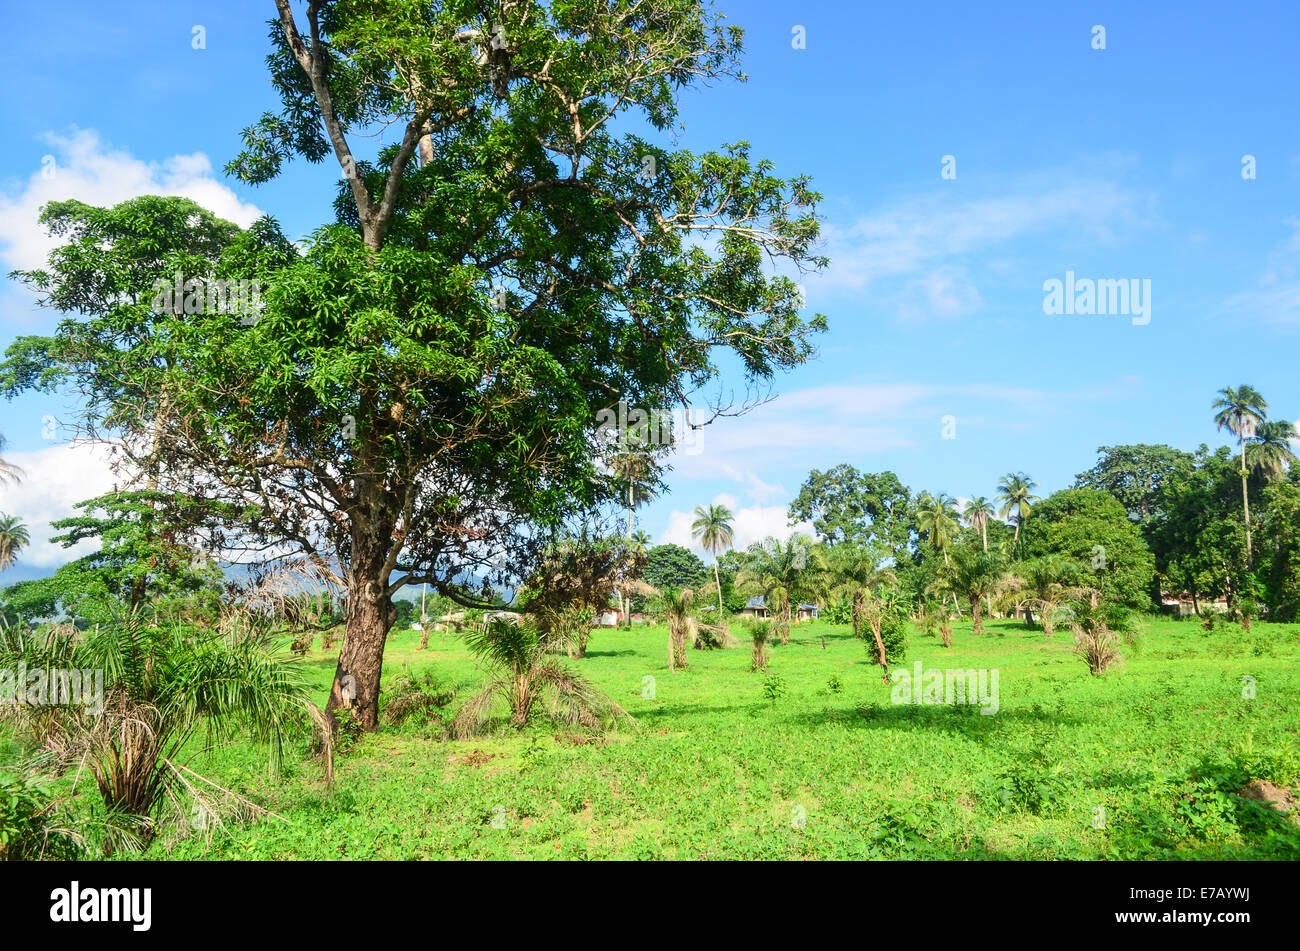 Green lush of the countryside, Sierra Leone, Africa - Stock Image